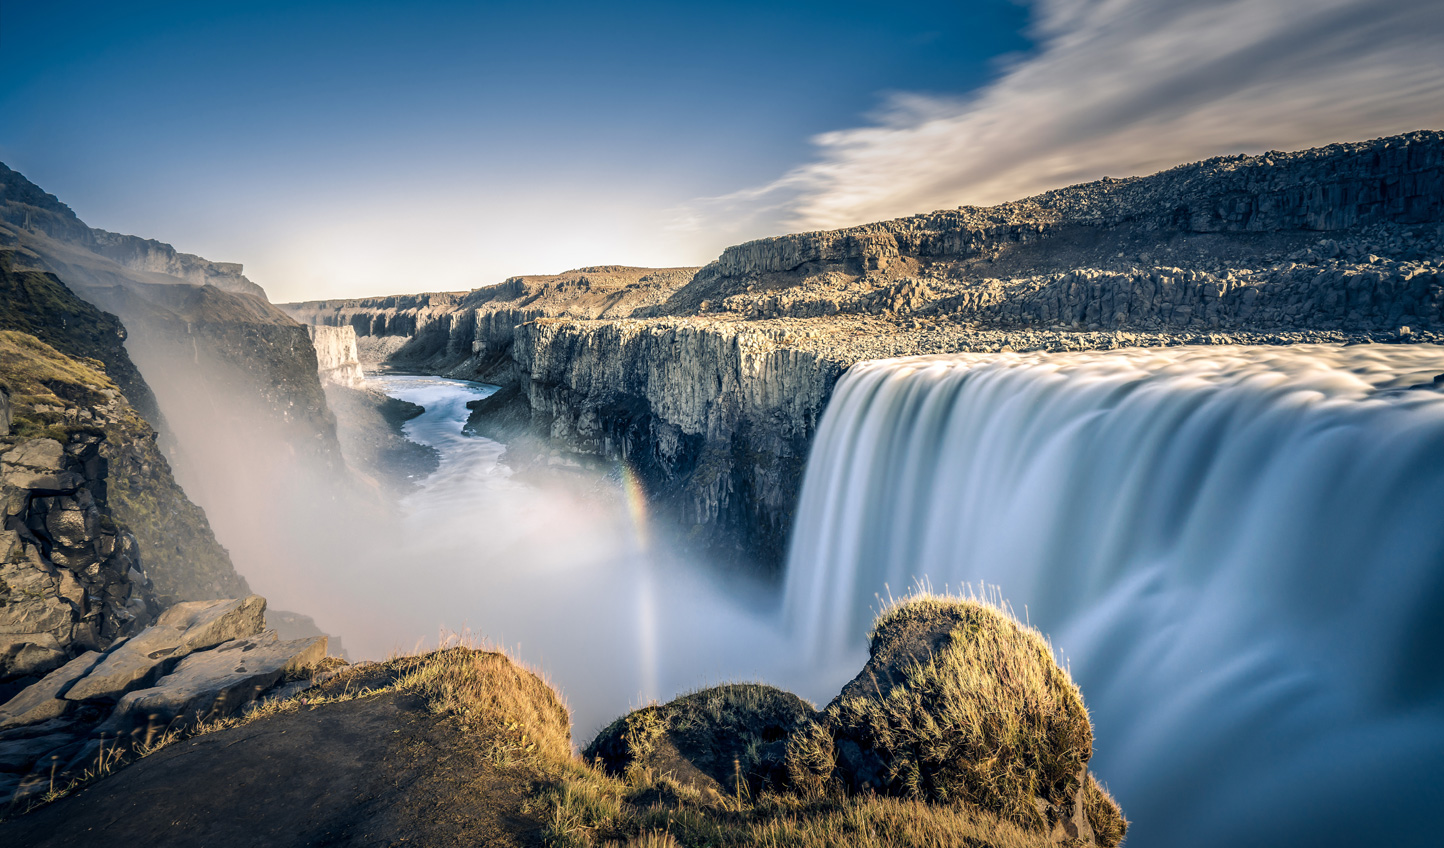 Take to the skies and see Europe's largest waterfall, Dettifoss, from the skies